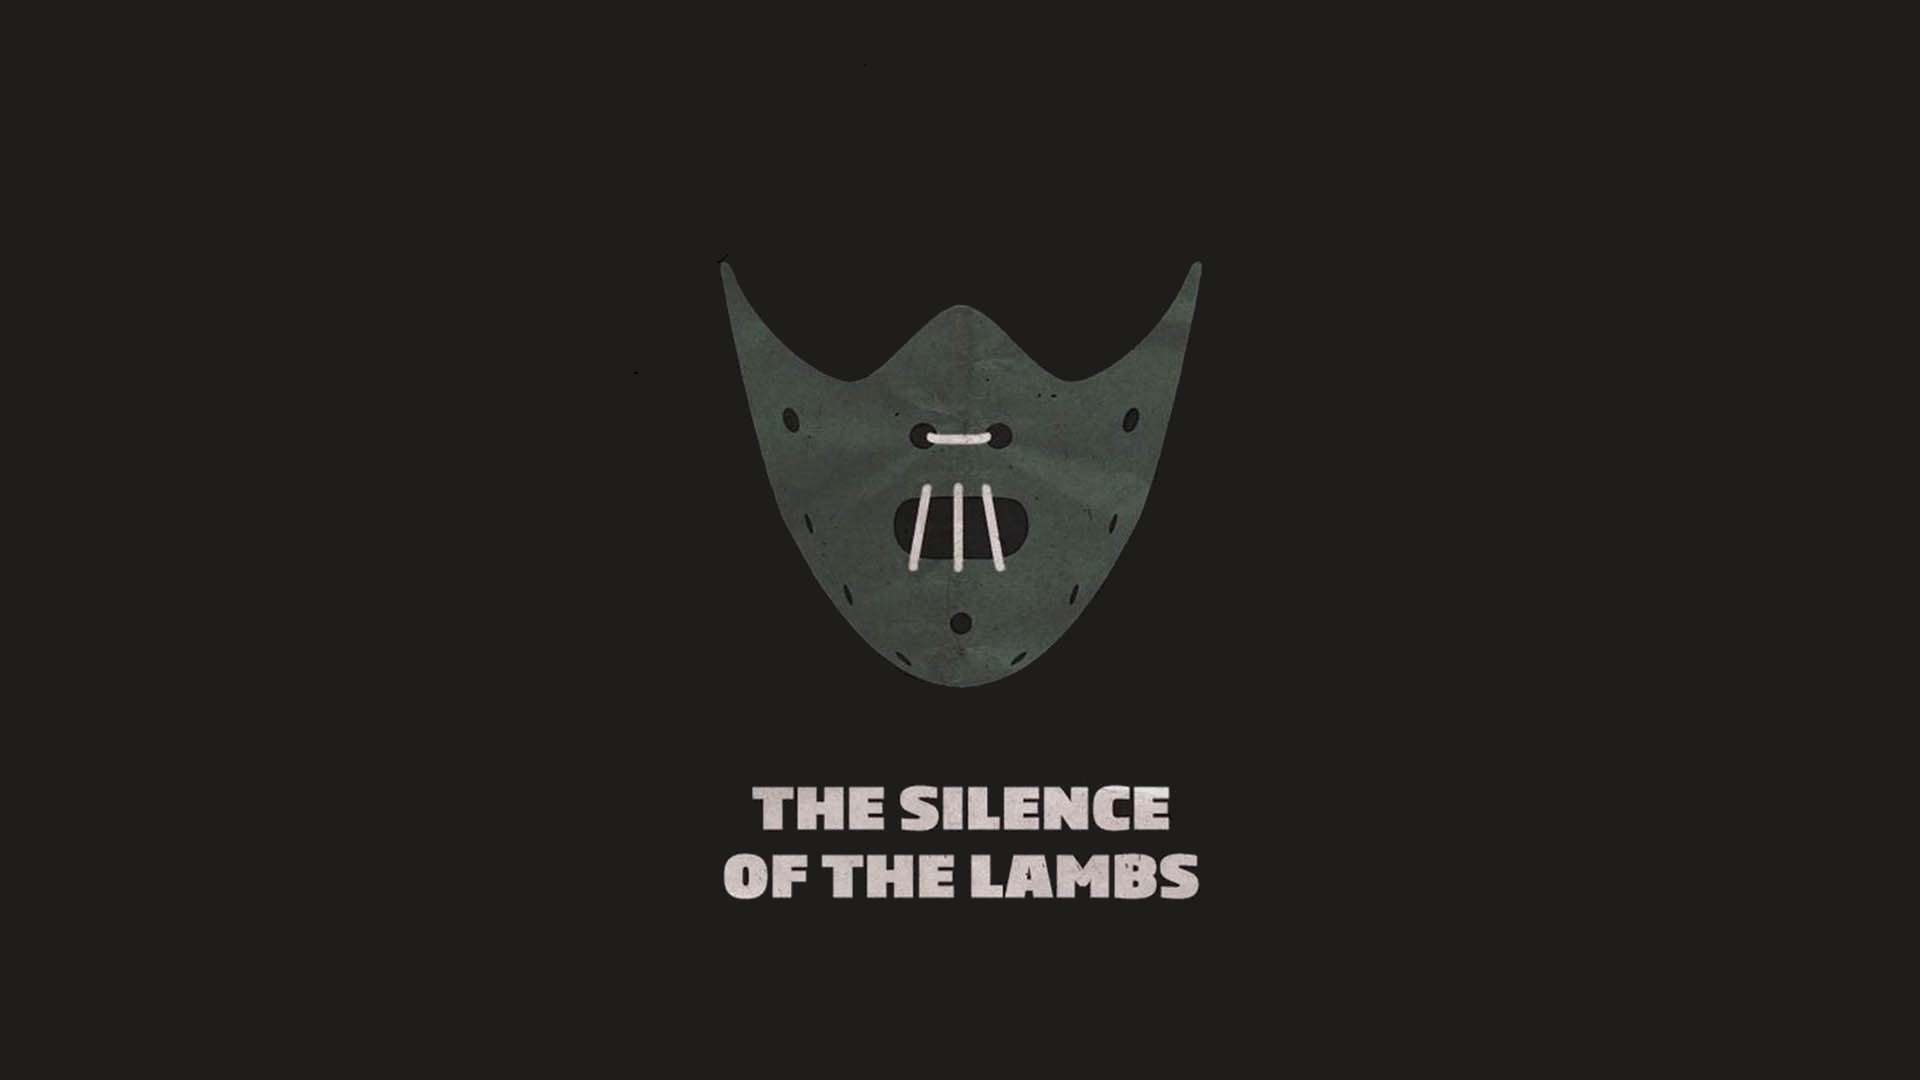 Free Download The Silence Of The Lambs Hd Wallpaper Background